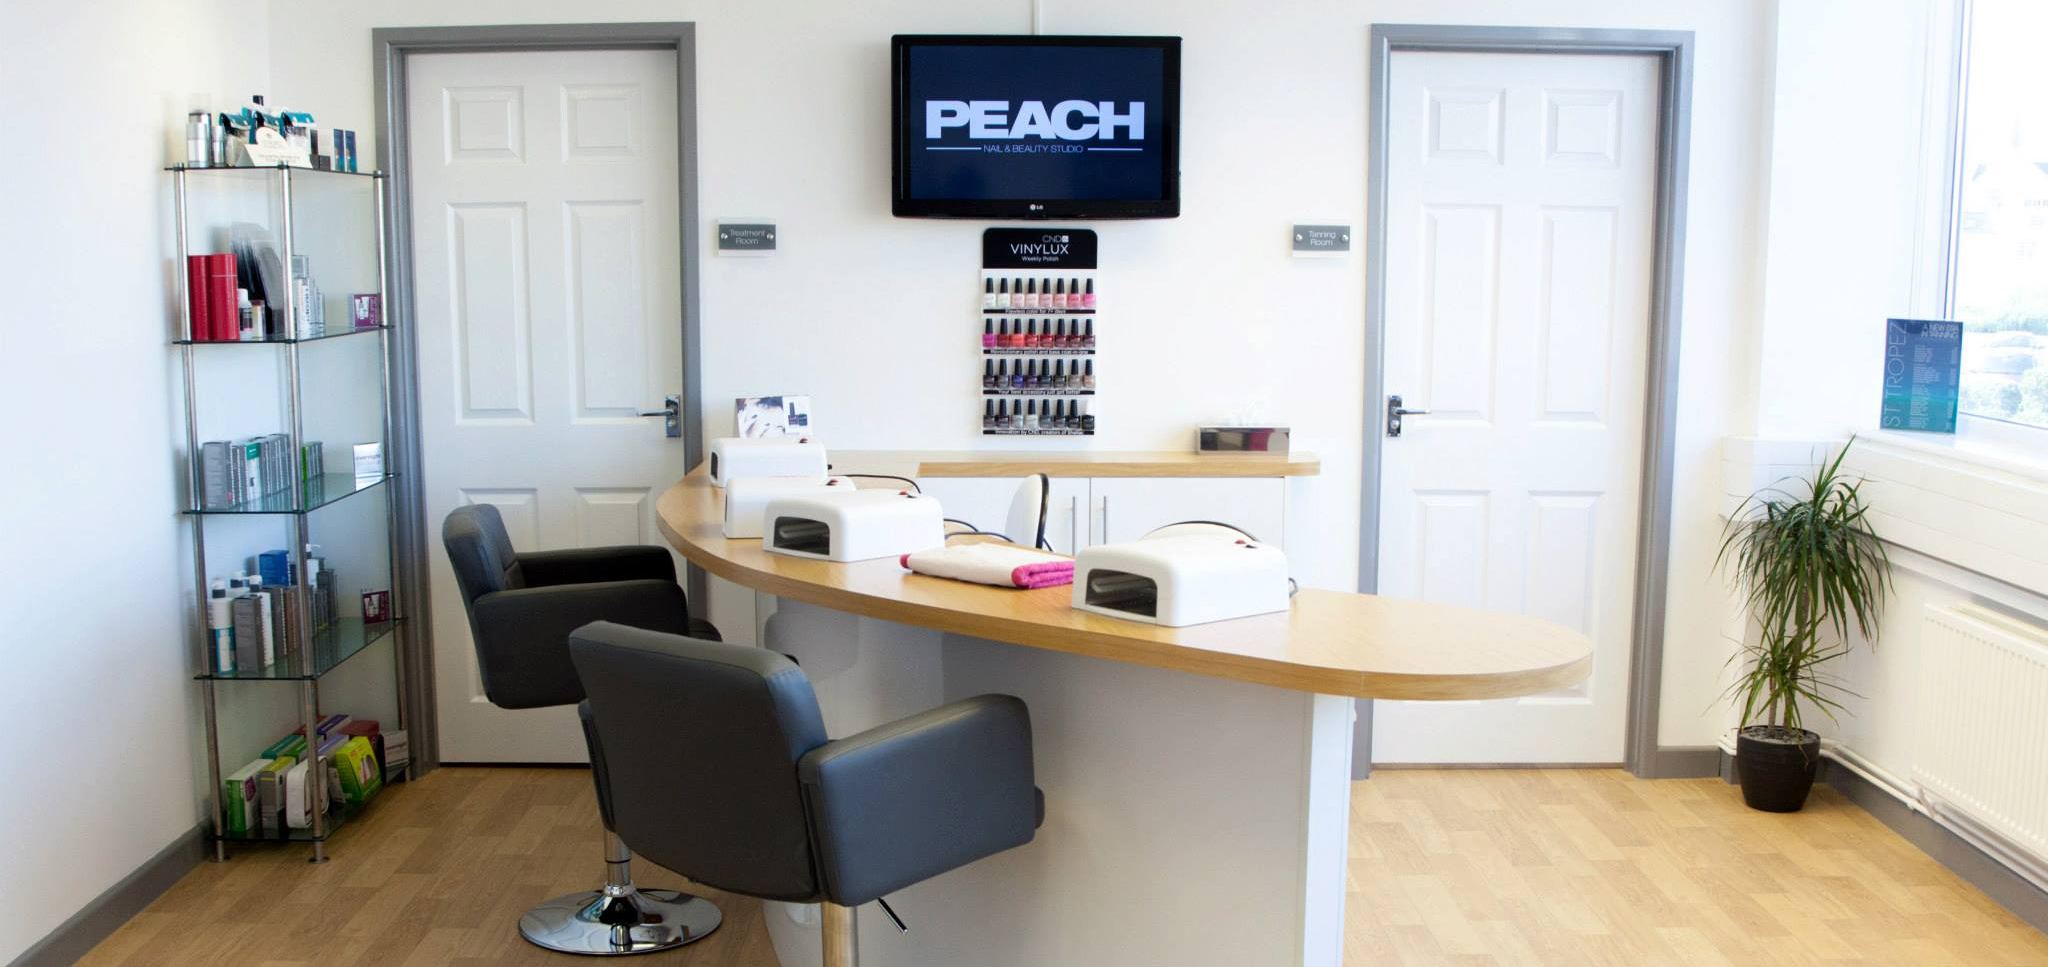 Peach Salon